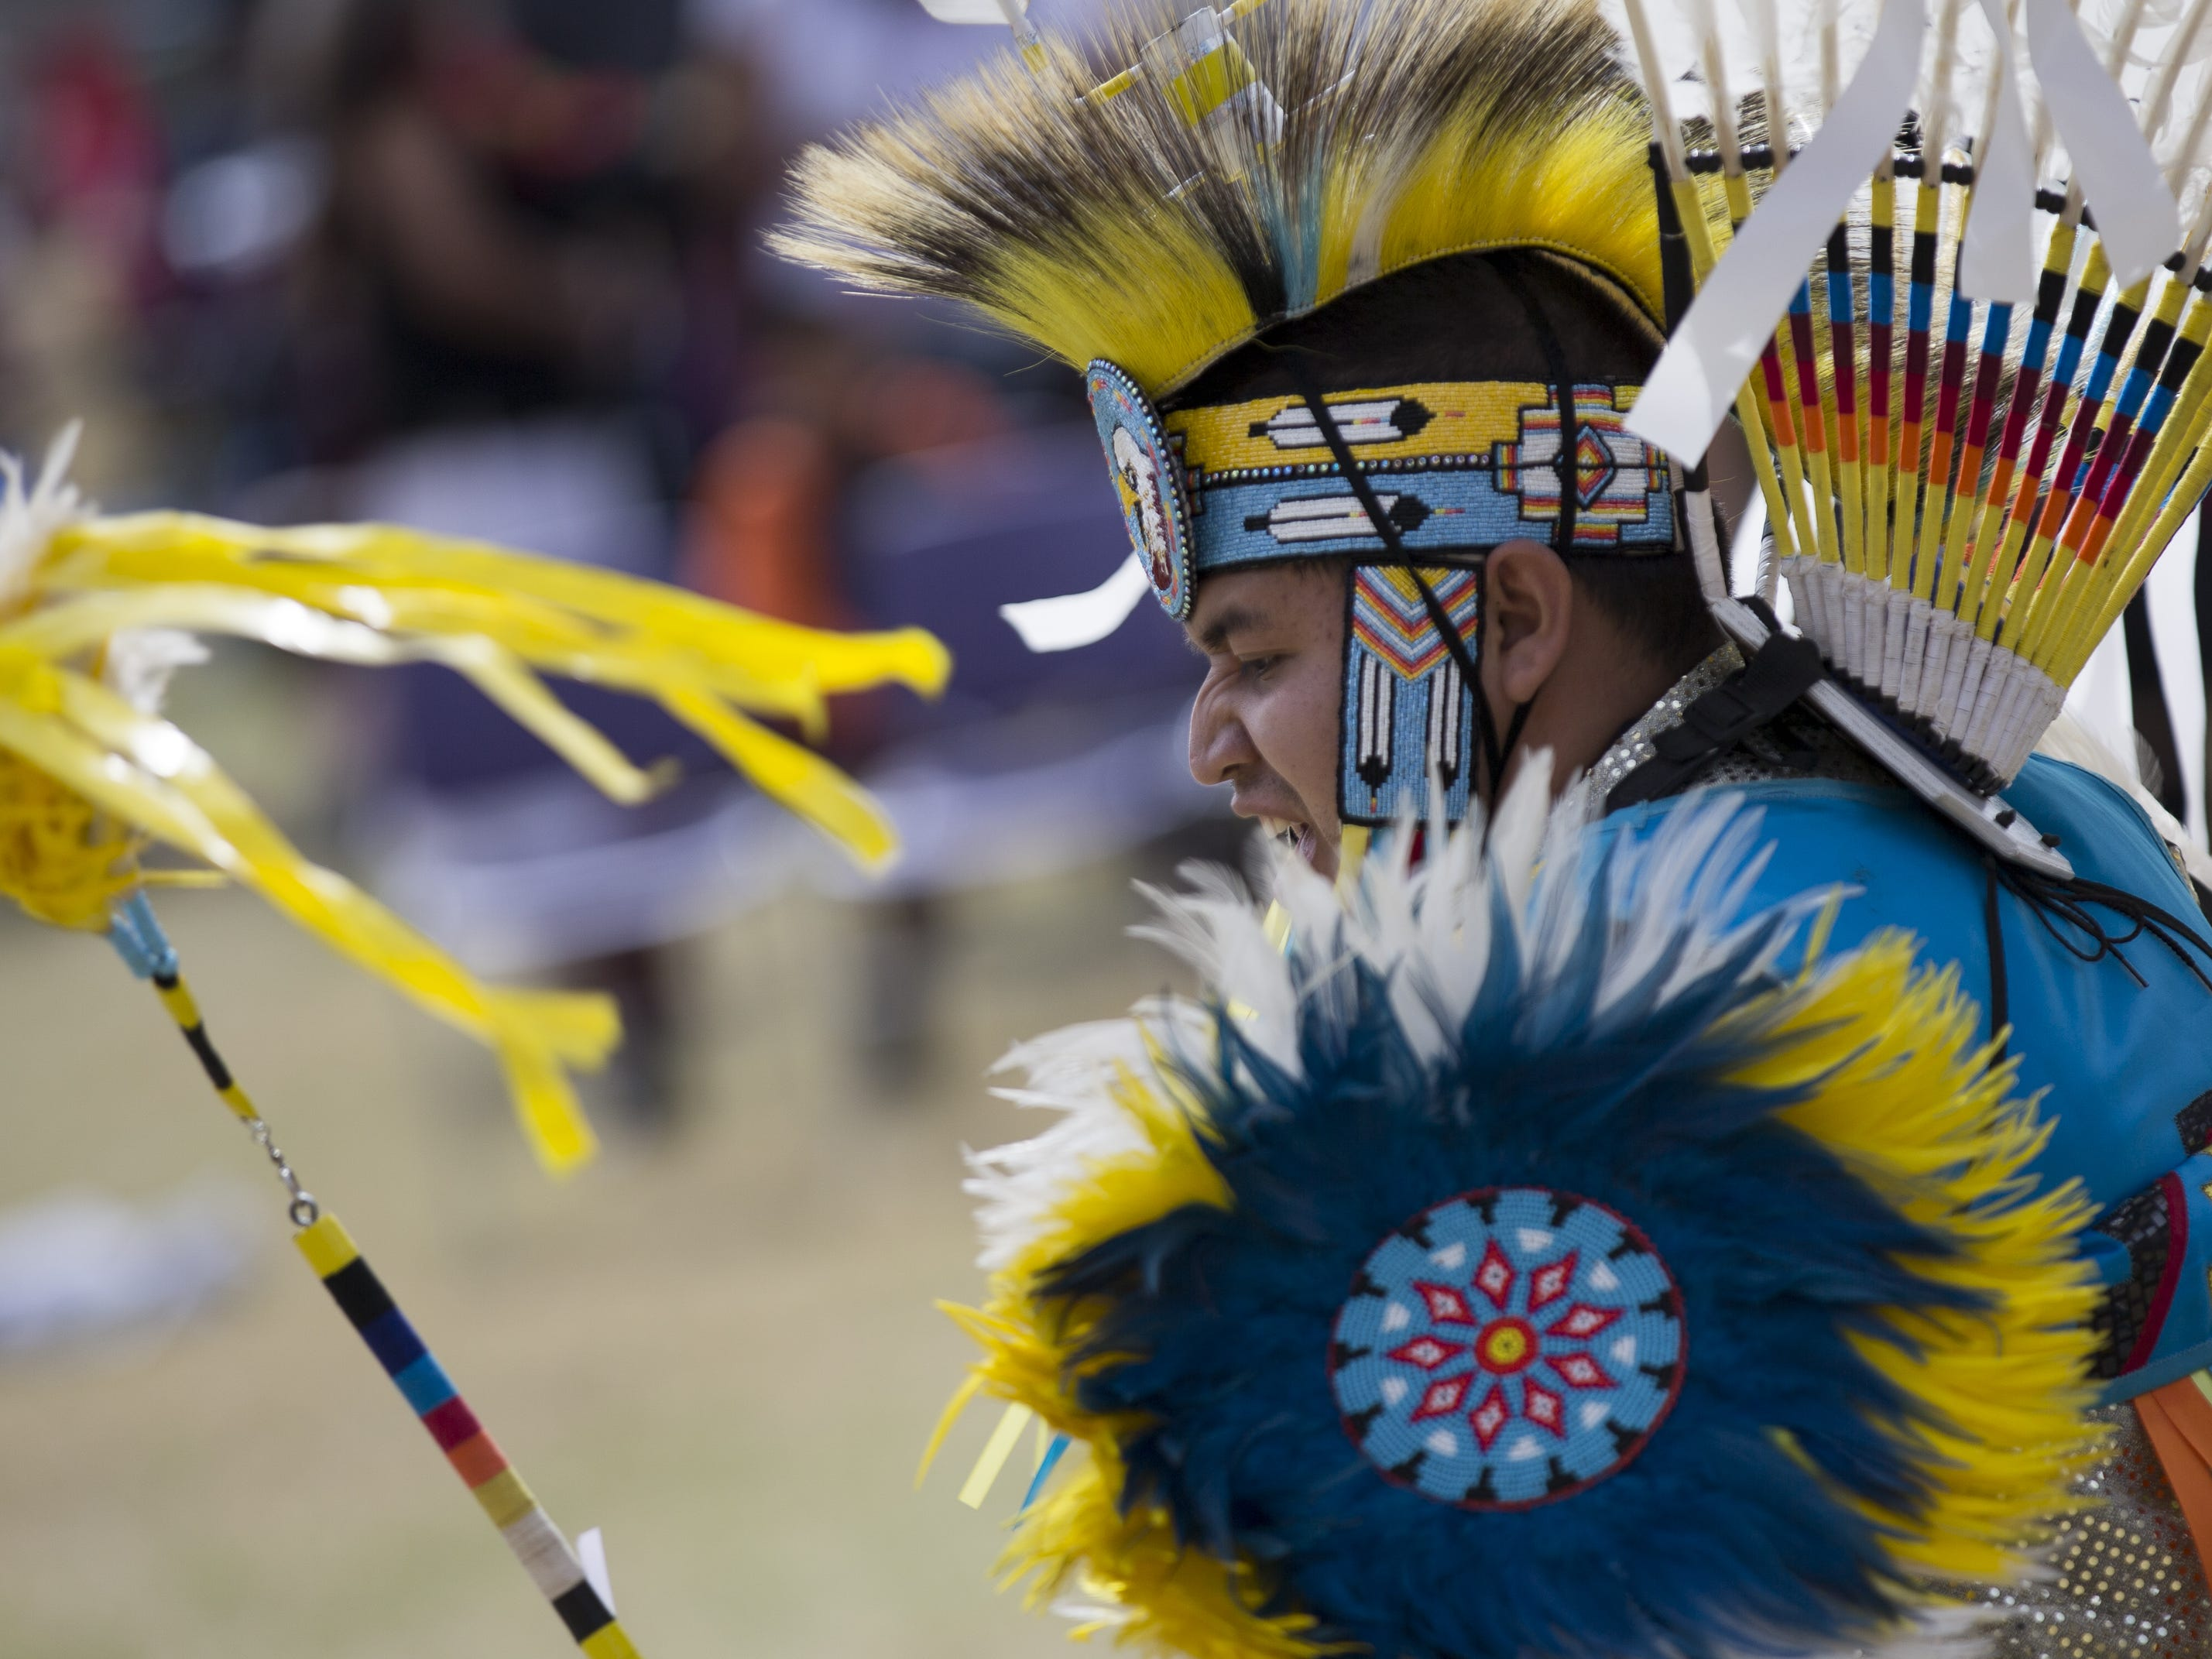 Cody Thompson performs a feather dance at the Native Two Spirit Powwow at South Mountain Community College in Phoenix, Ariz. on Saturday, March 9, 2019. The powwow was the first of its kind in Arizona, featuring members who identified as two spirit, and members who did not, dancing together.